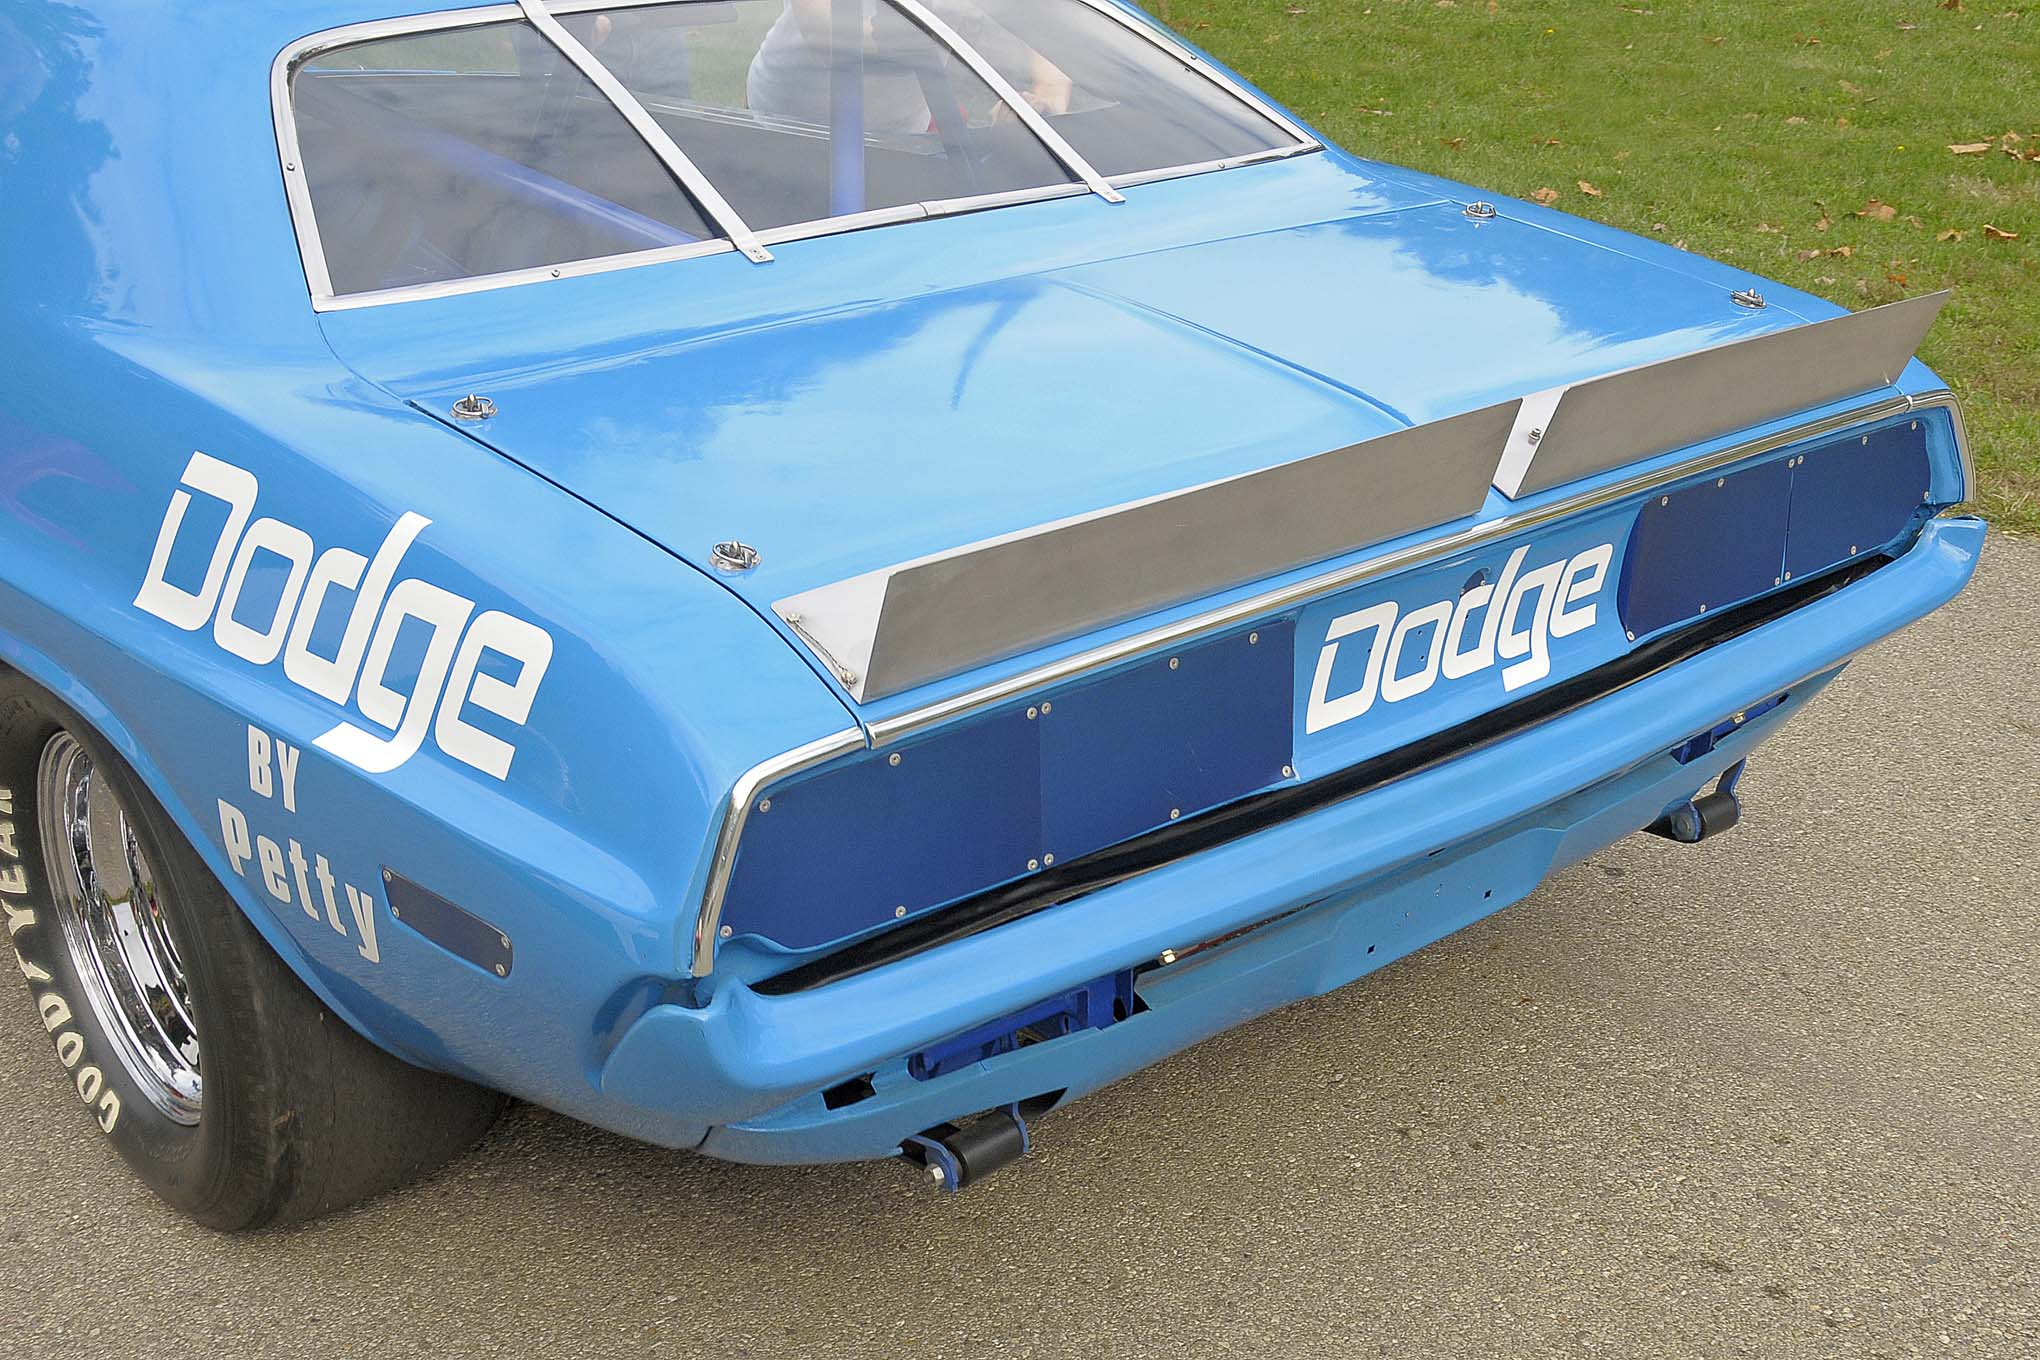 As was the custom of the time, the rear-deck spoiler was designed in two pieces and contributed much needed downforce.